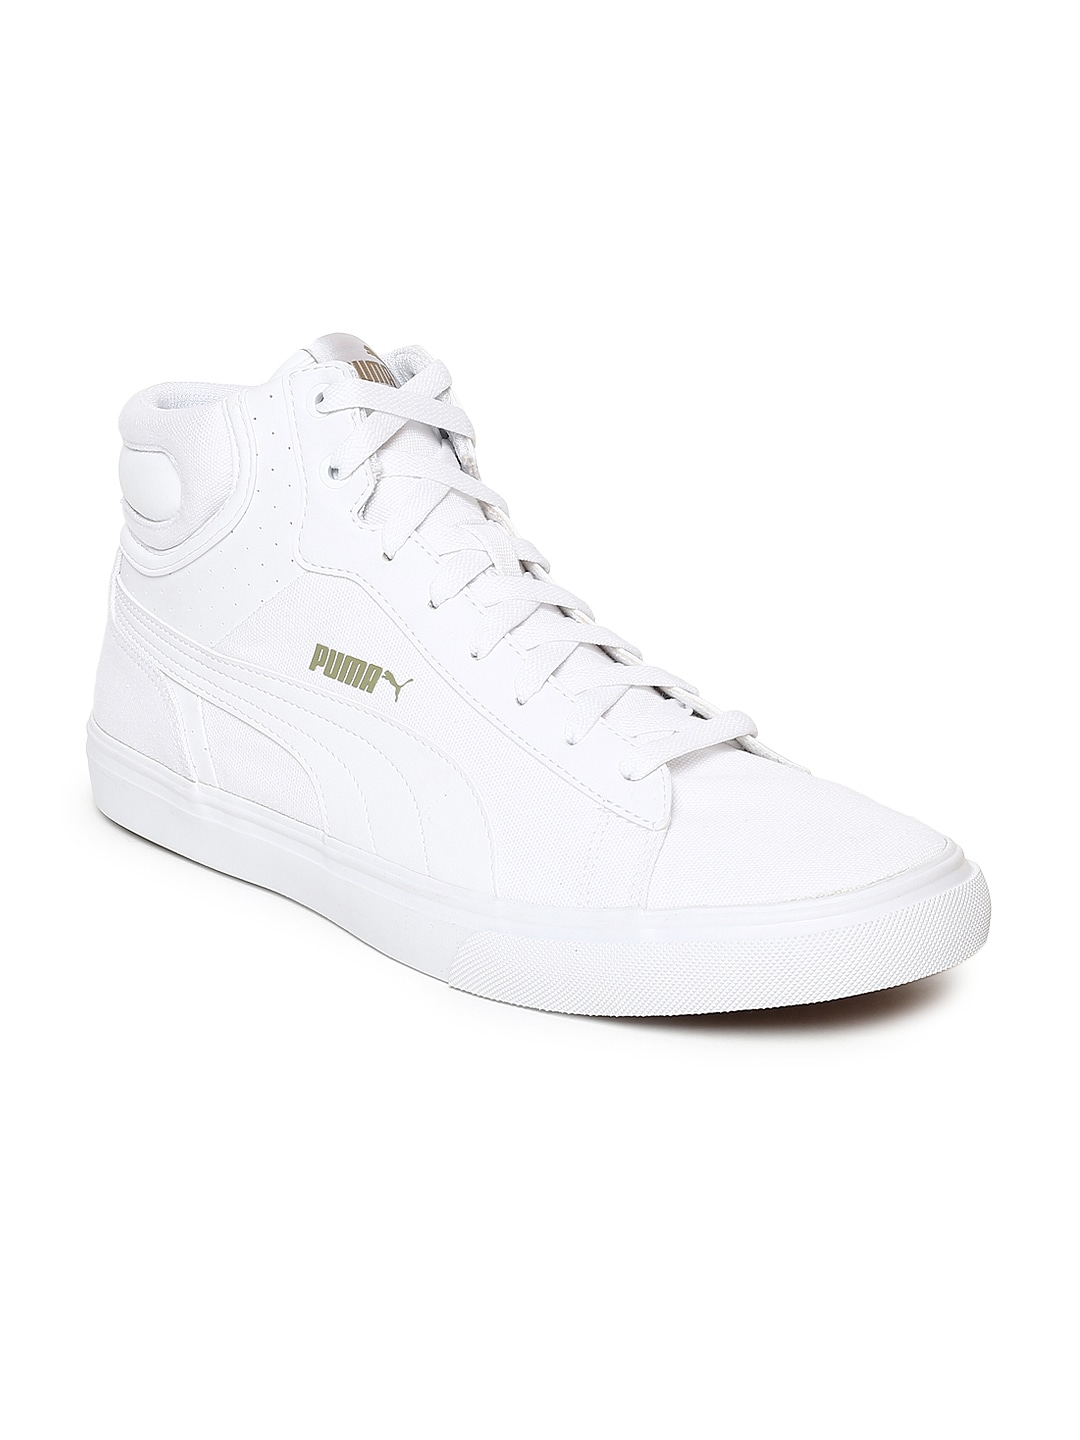 new style 32a9b 2038d Men Sneakers Puma Casual Shoes Sports - Buy Men Sneakers Puma Casual Shoes  Sports online in India